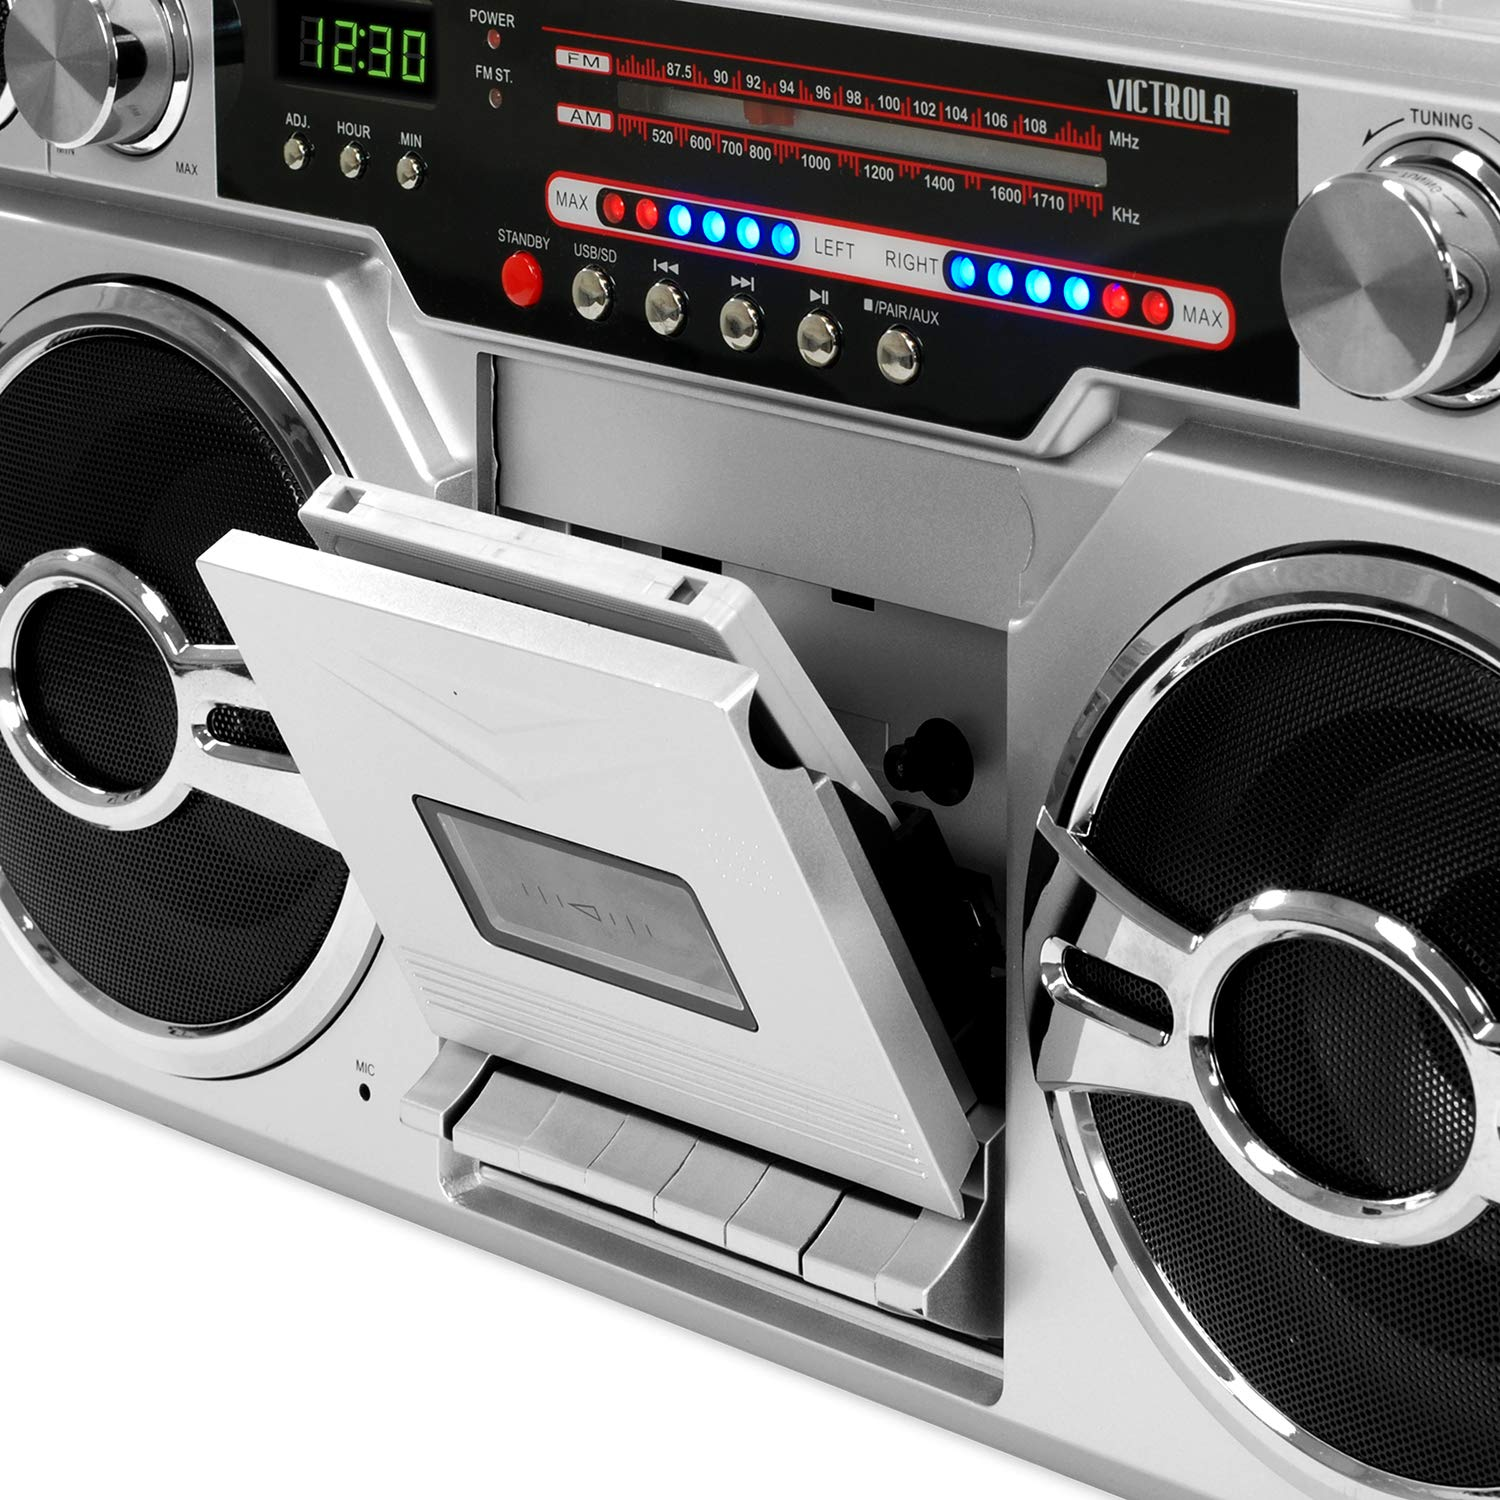 Victrola VBB-10-SLV 1980's Bluetooth Boombox with Cassette Player and AM/FM Radio, Silver by Victrola (Image #2)